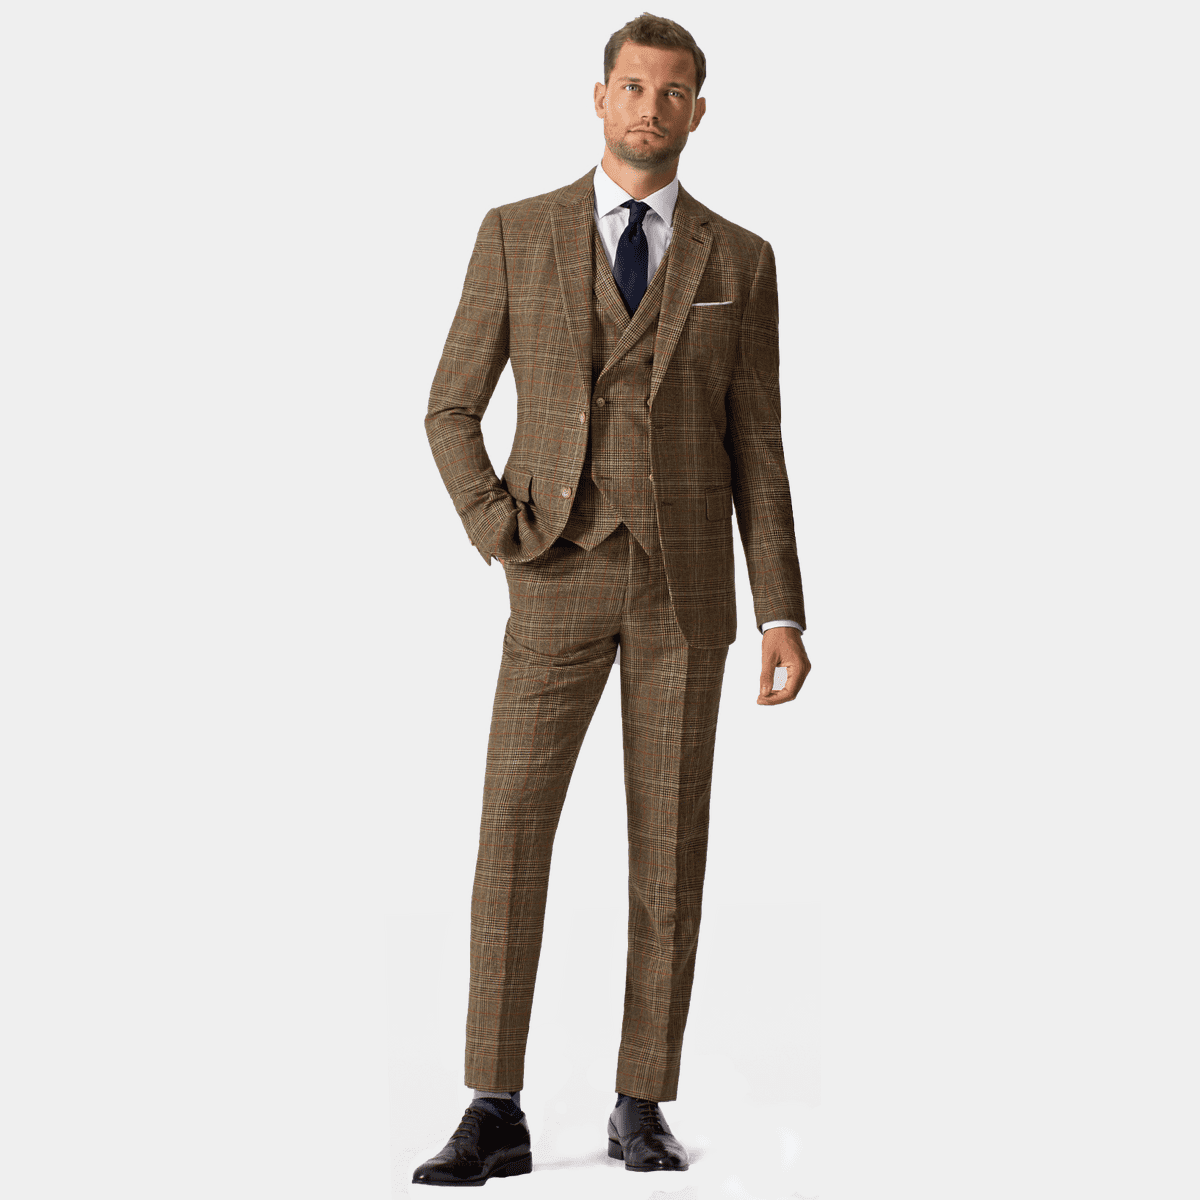 Tweed Suits High Quality Tweed Fabrics Hockerty